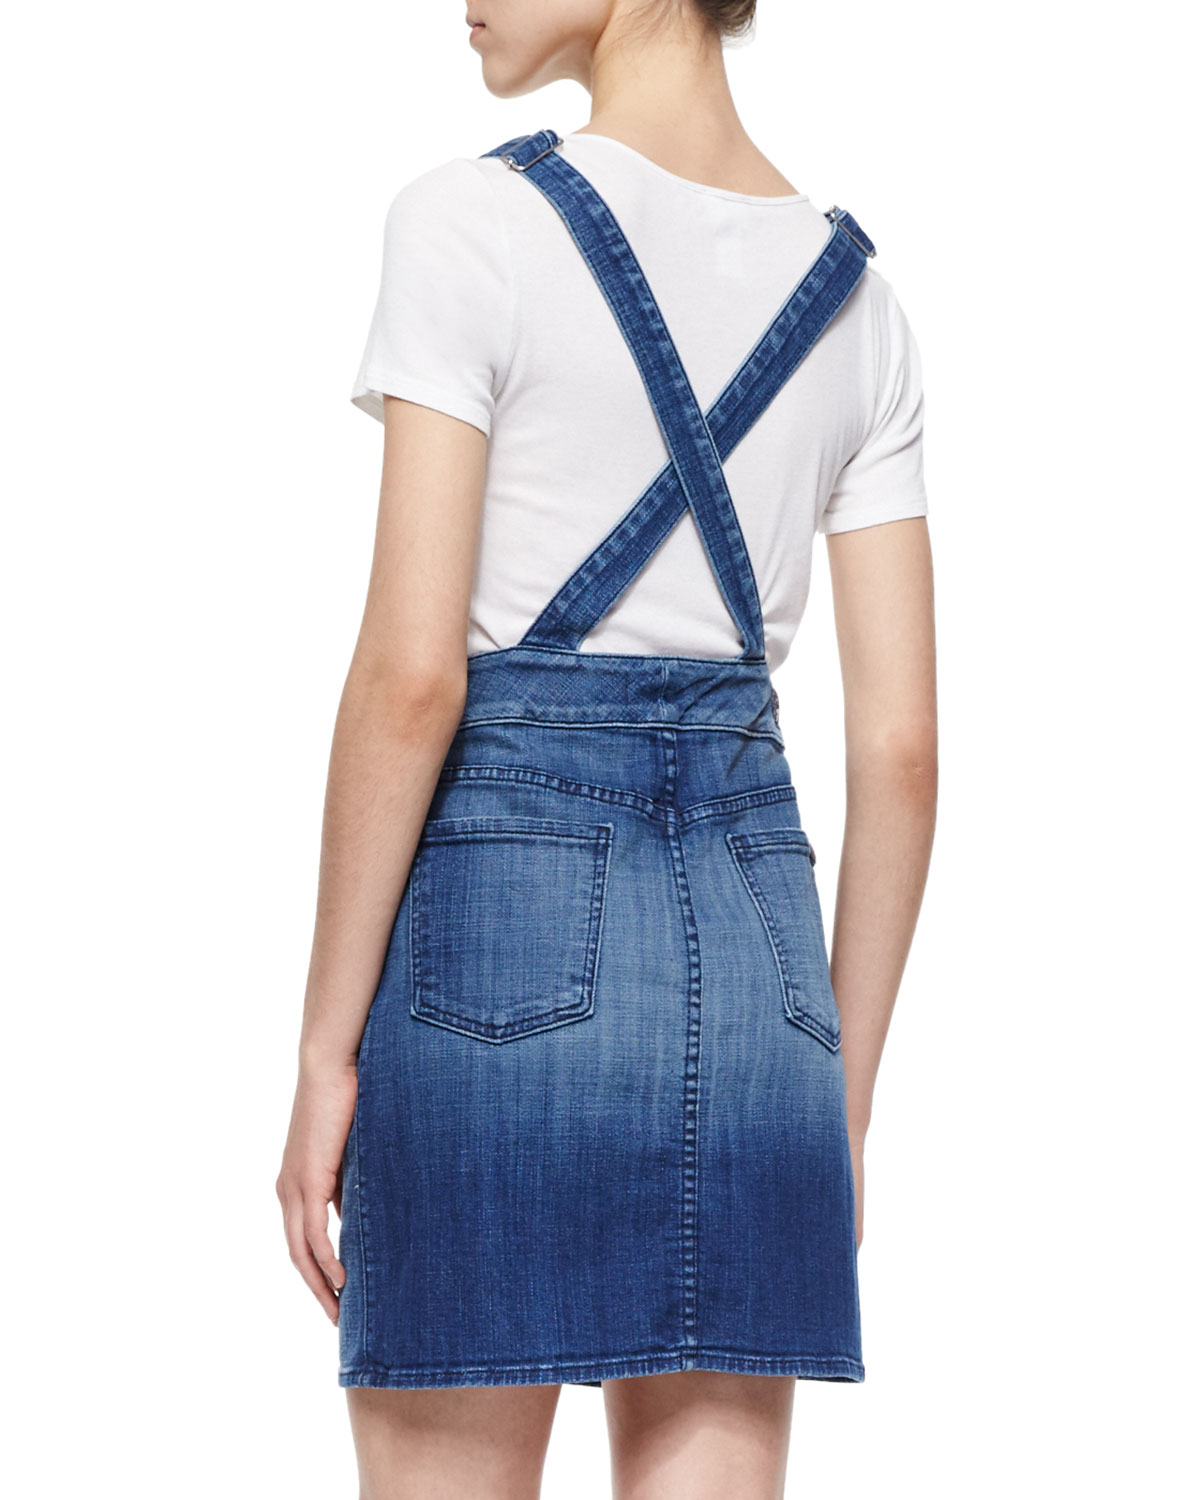 7 for all mankind denim button front overall skirt in blue